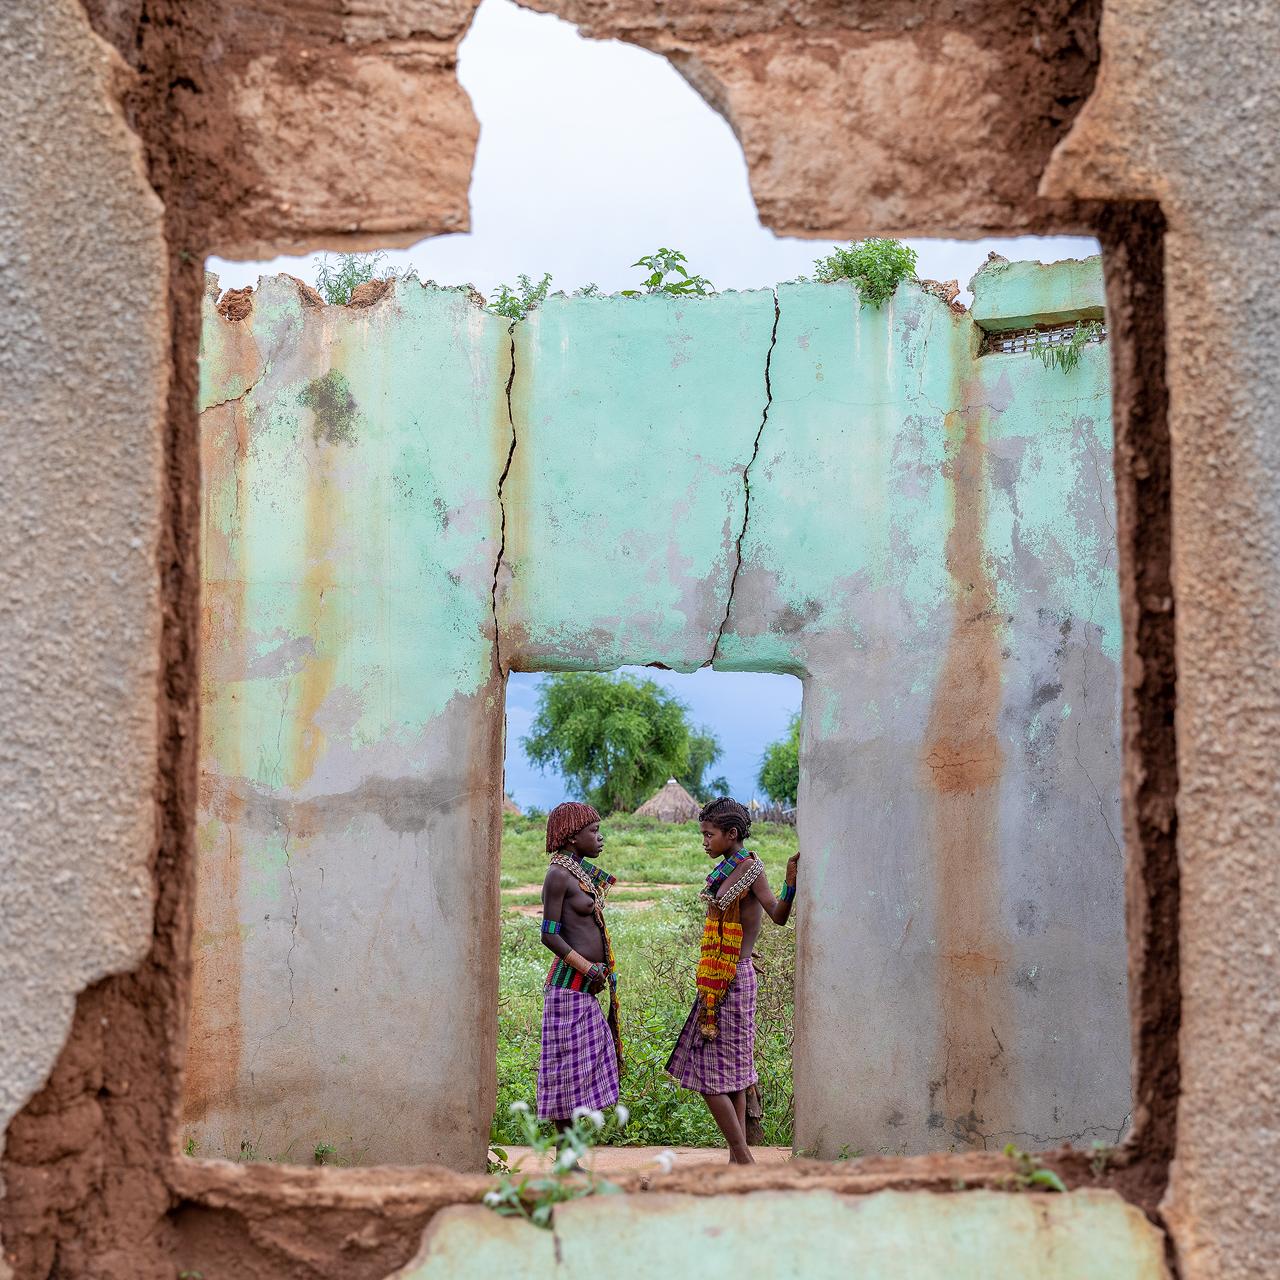 Two African girls talking in a ruined building